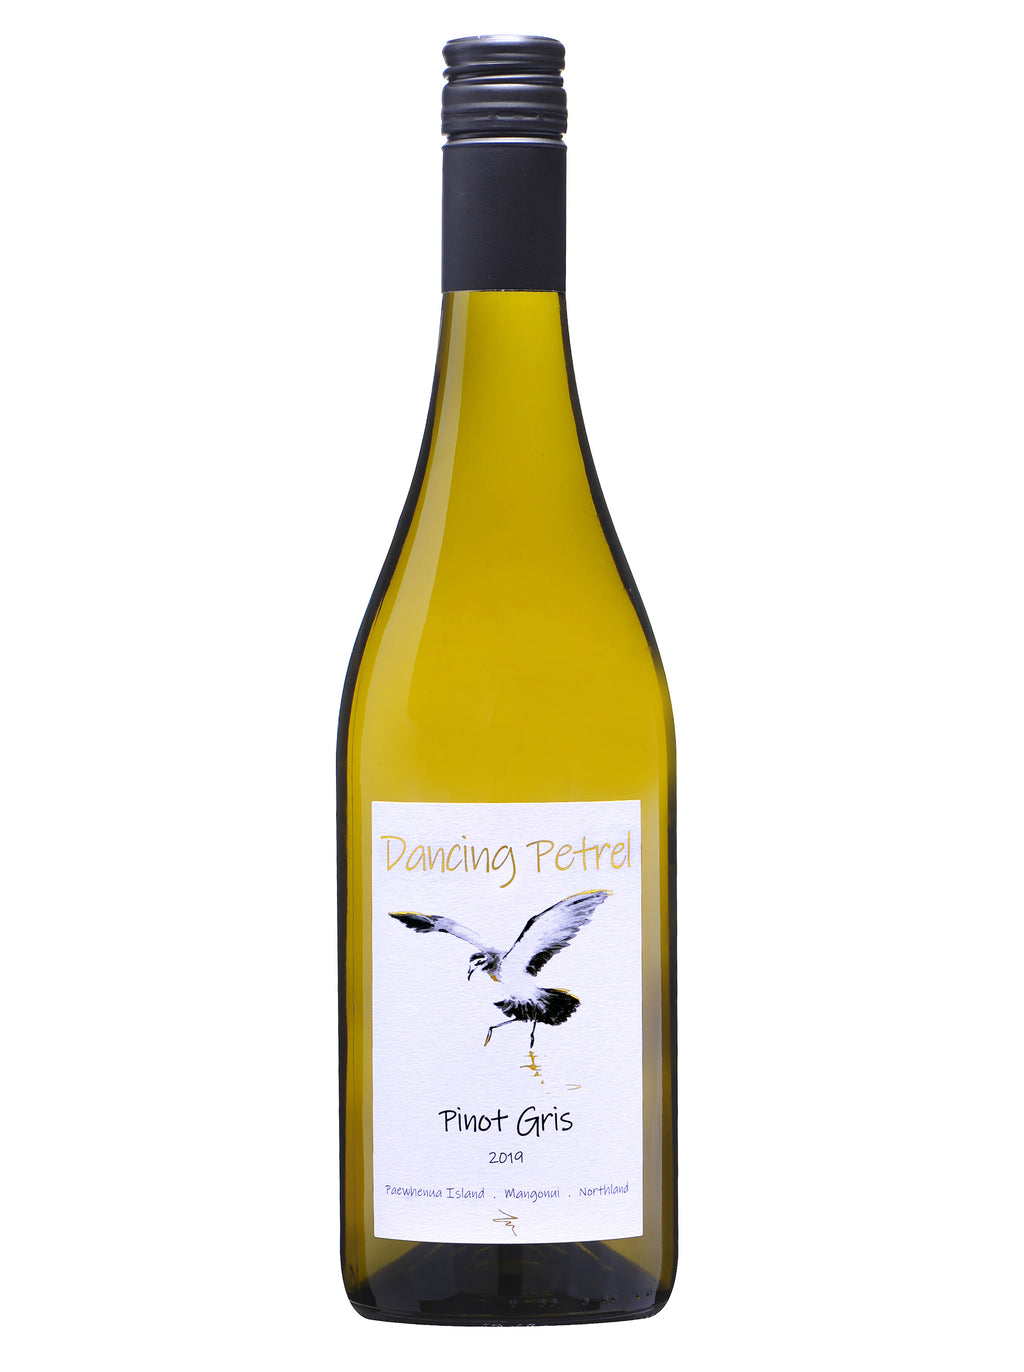 Dancing Petrel, Pinot Gris, New Zealand Wine, New Zealand Winery, Online Wine Store, New Zealand Wine Events, Auckland Wine Events, Winetopia, Auckland Restaurant Month